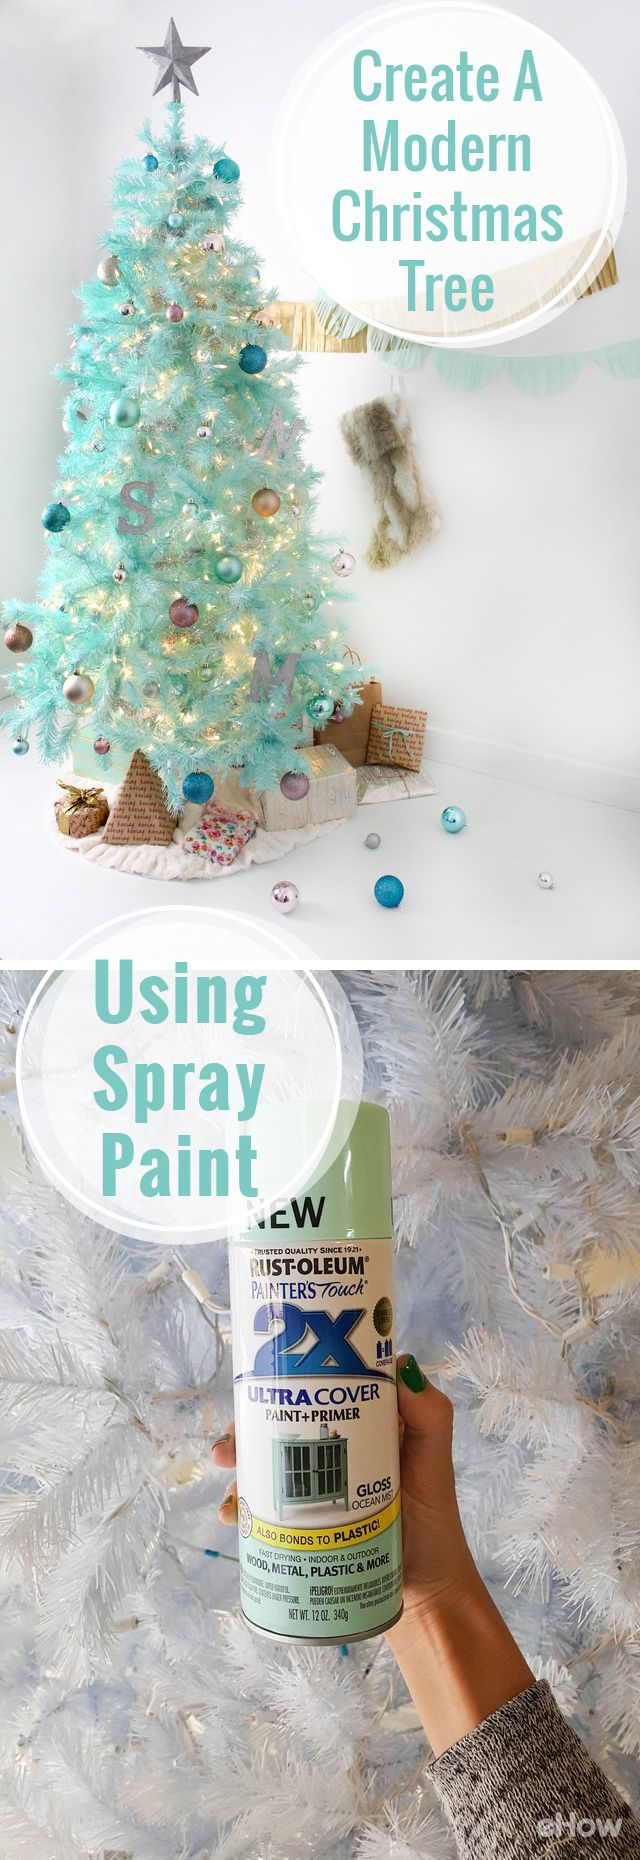 Crestwood small artificial christmas tree with plastic bronze pot - How To Create A Modern Christmas Tree Using Spray Paint